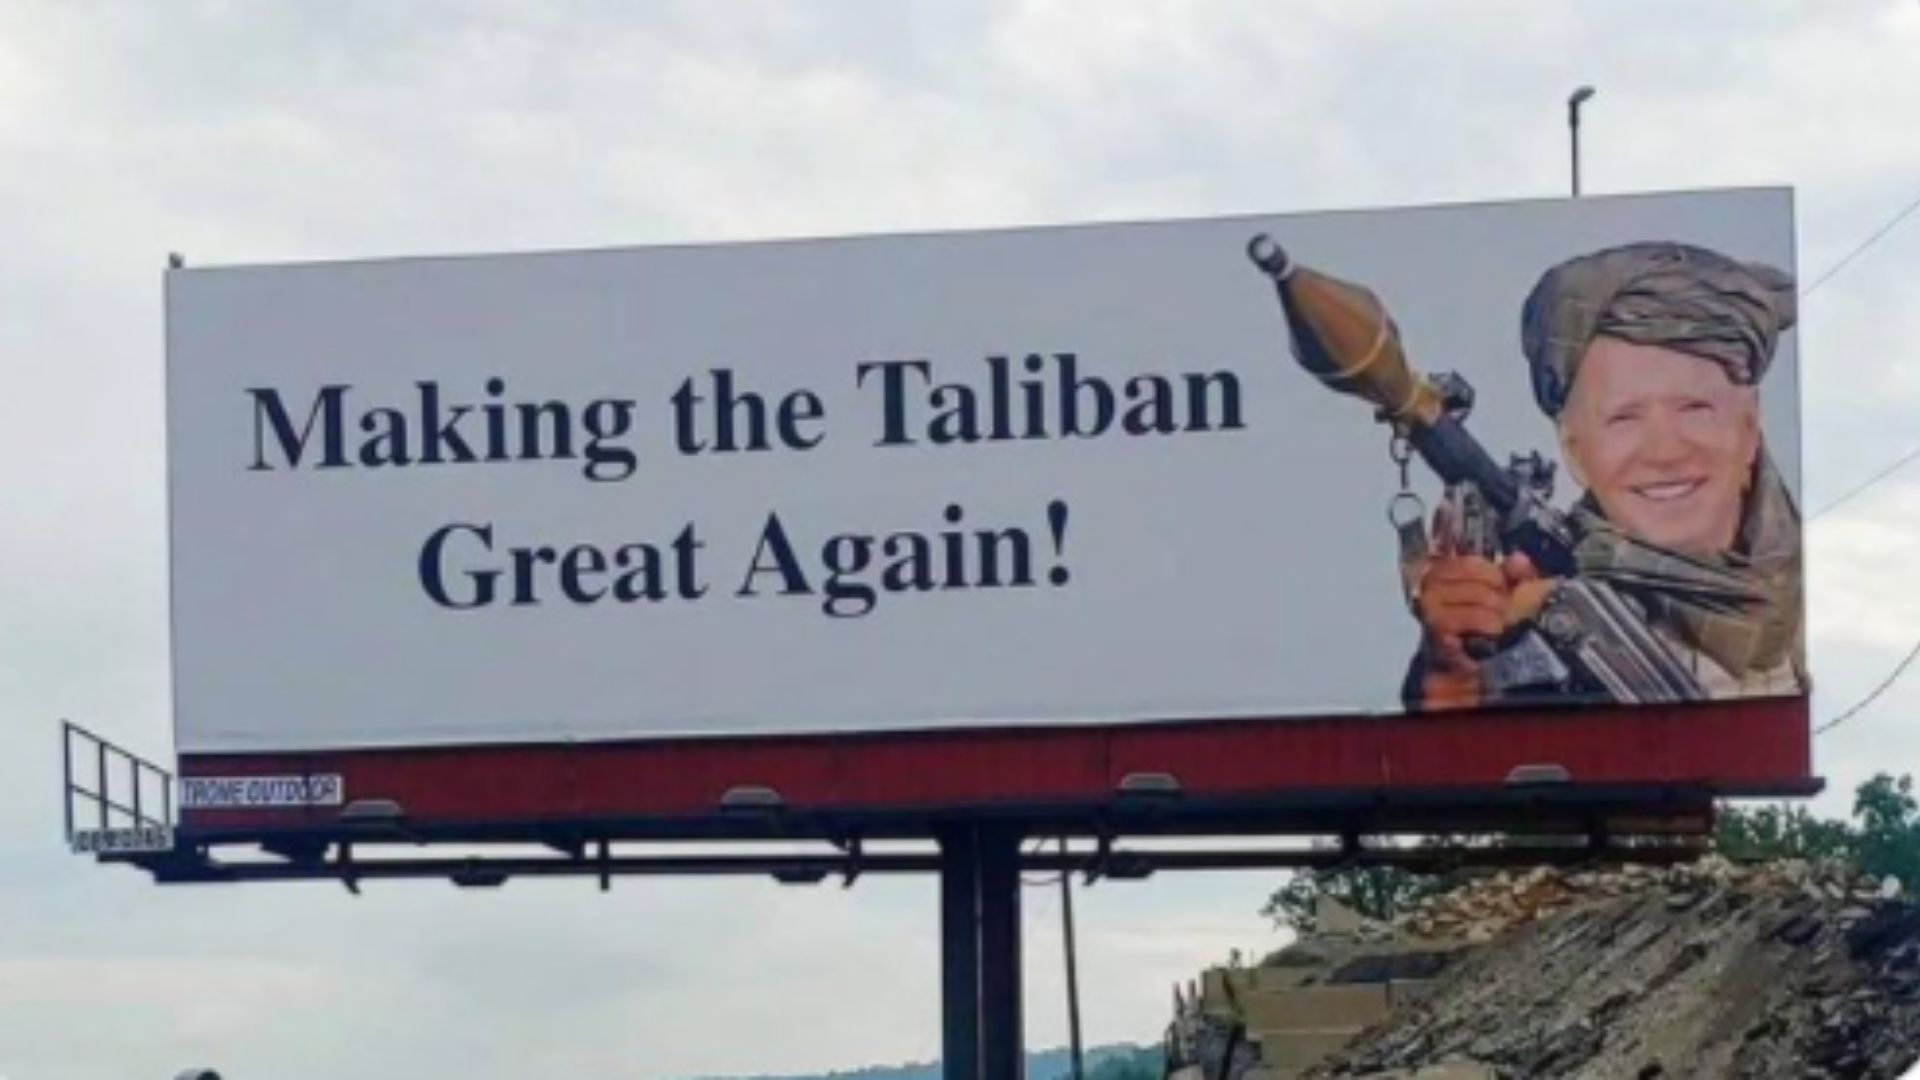 Former Republican Official Behind Pennsylvania Billboards Mocking Biden For 'Making The Taliban Great Again'